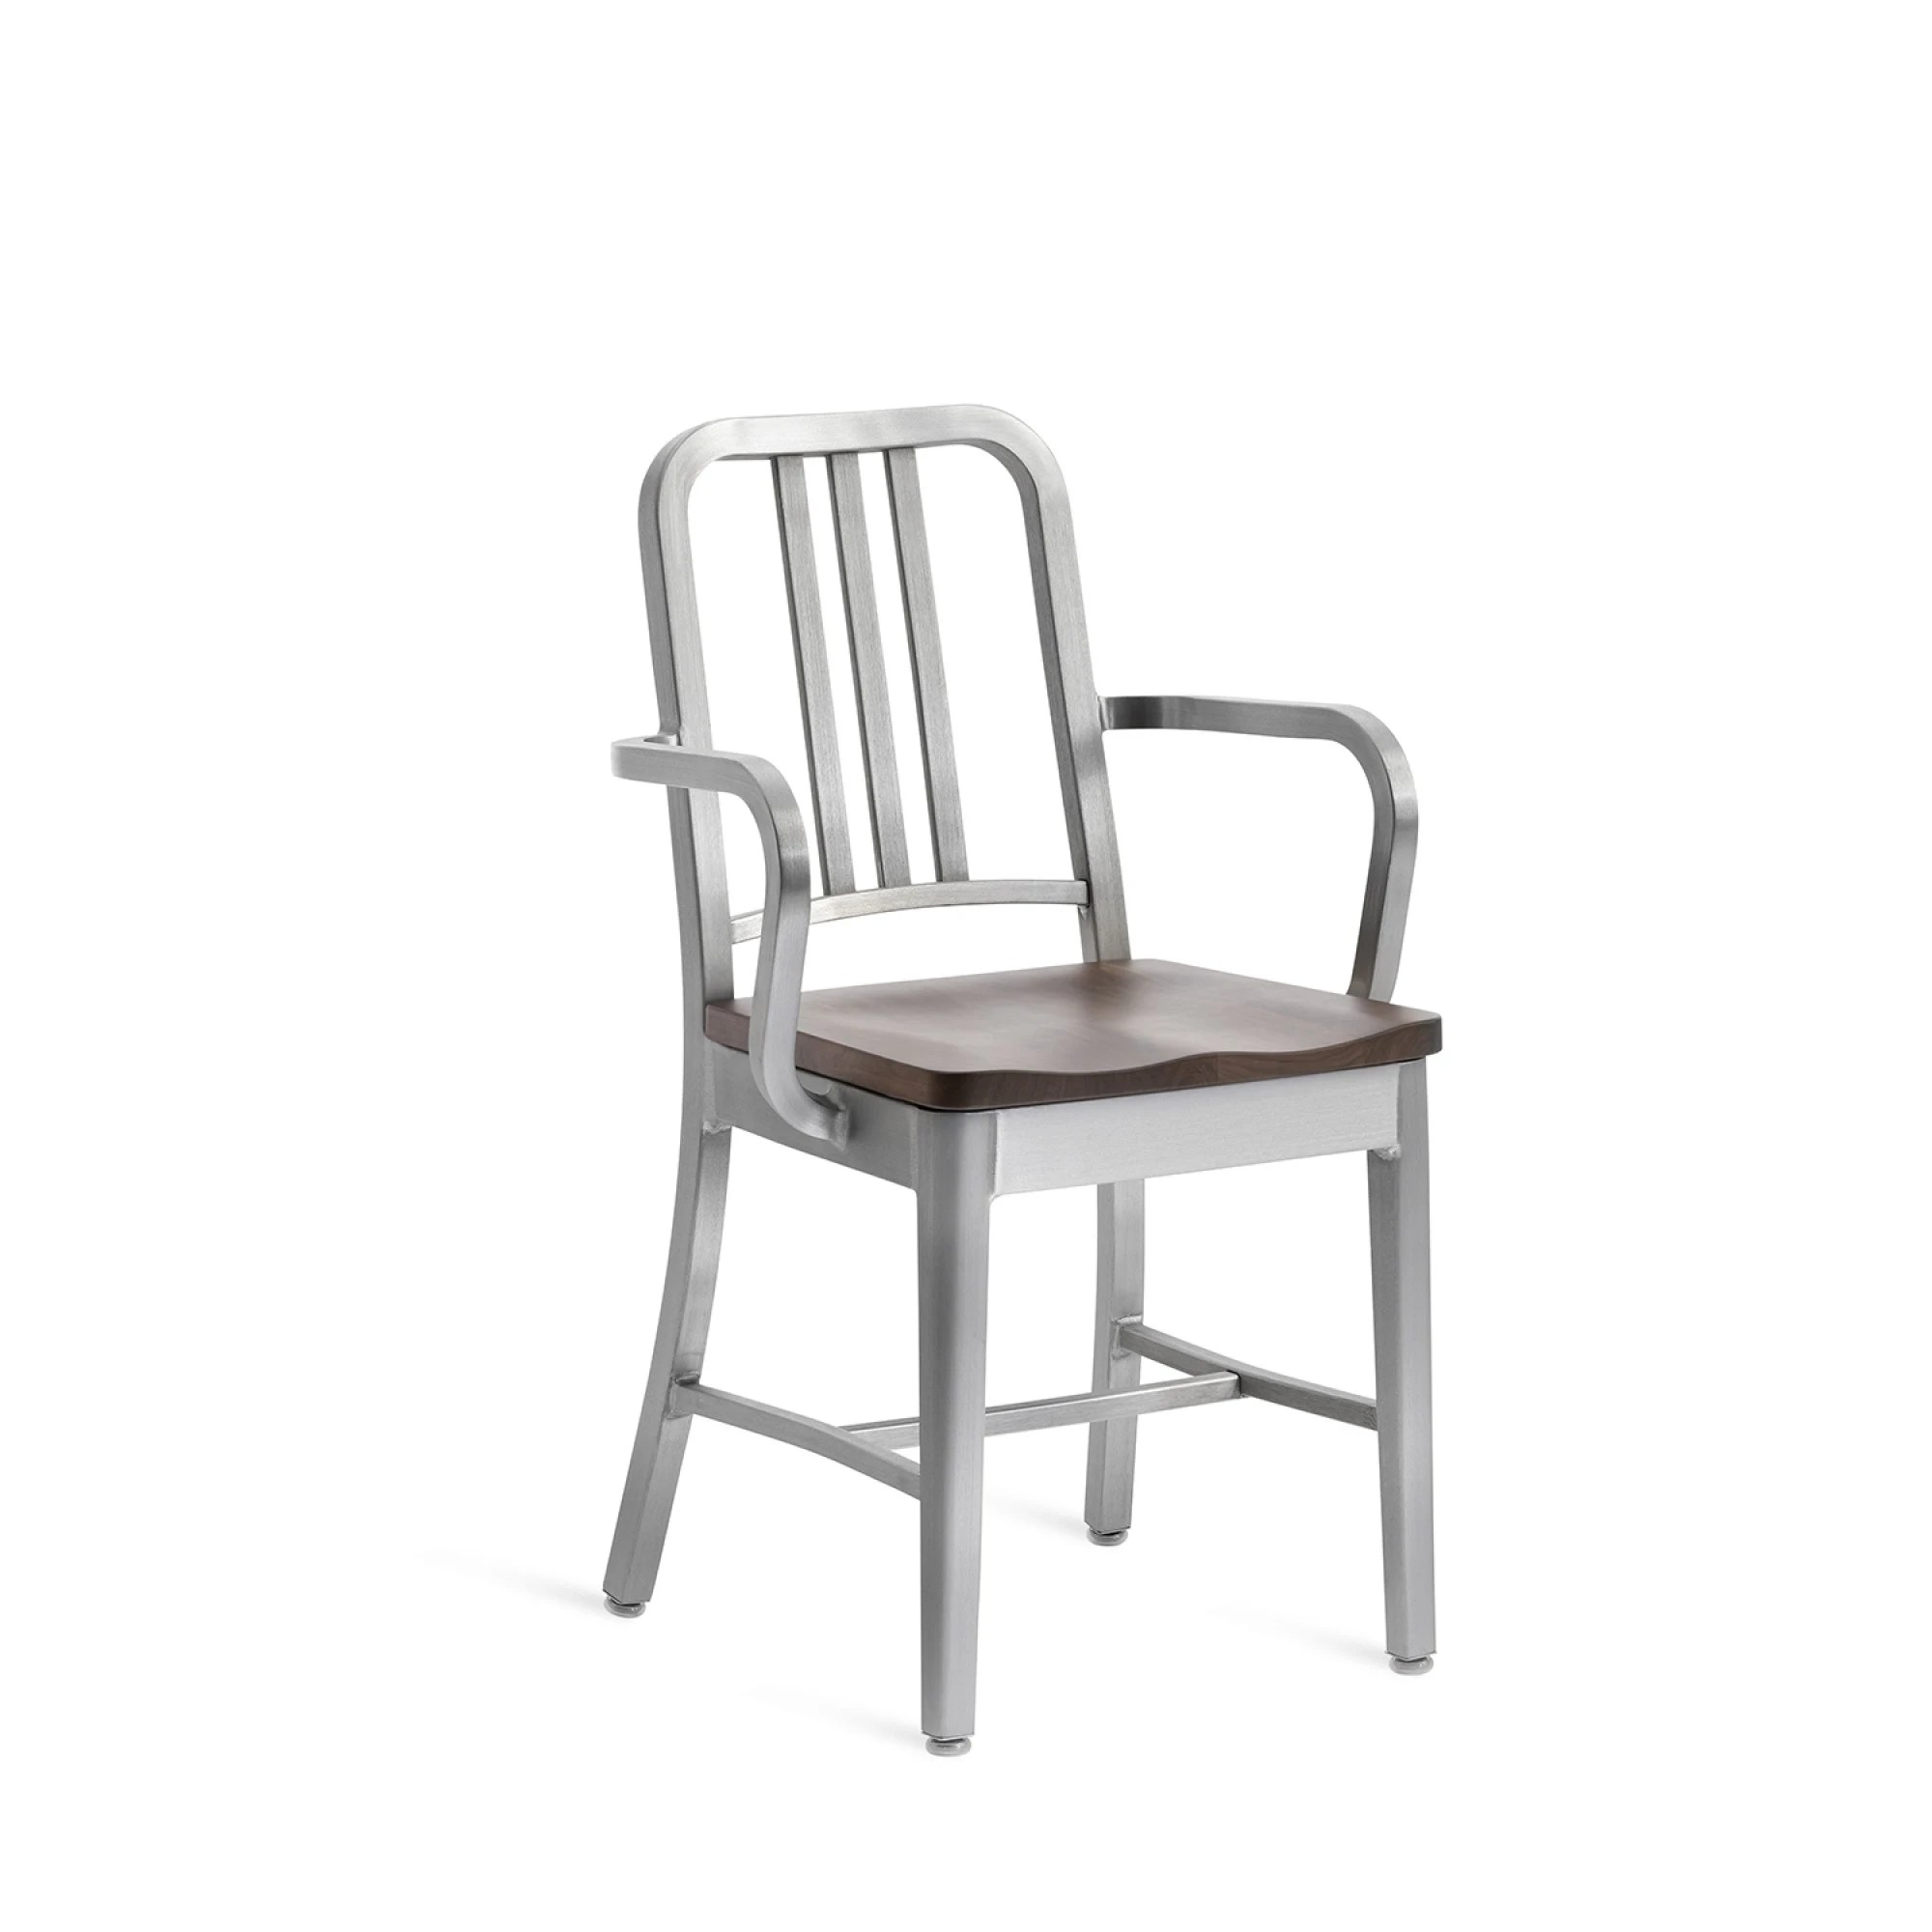 navy chair stool office replacement wheels emeco arm with natural wood seat modern planet